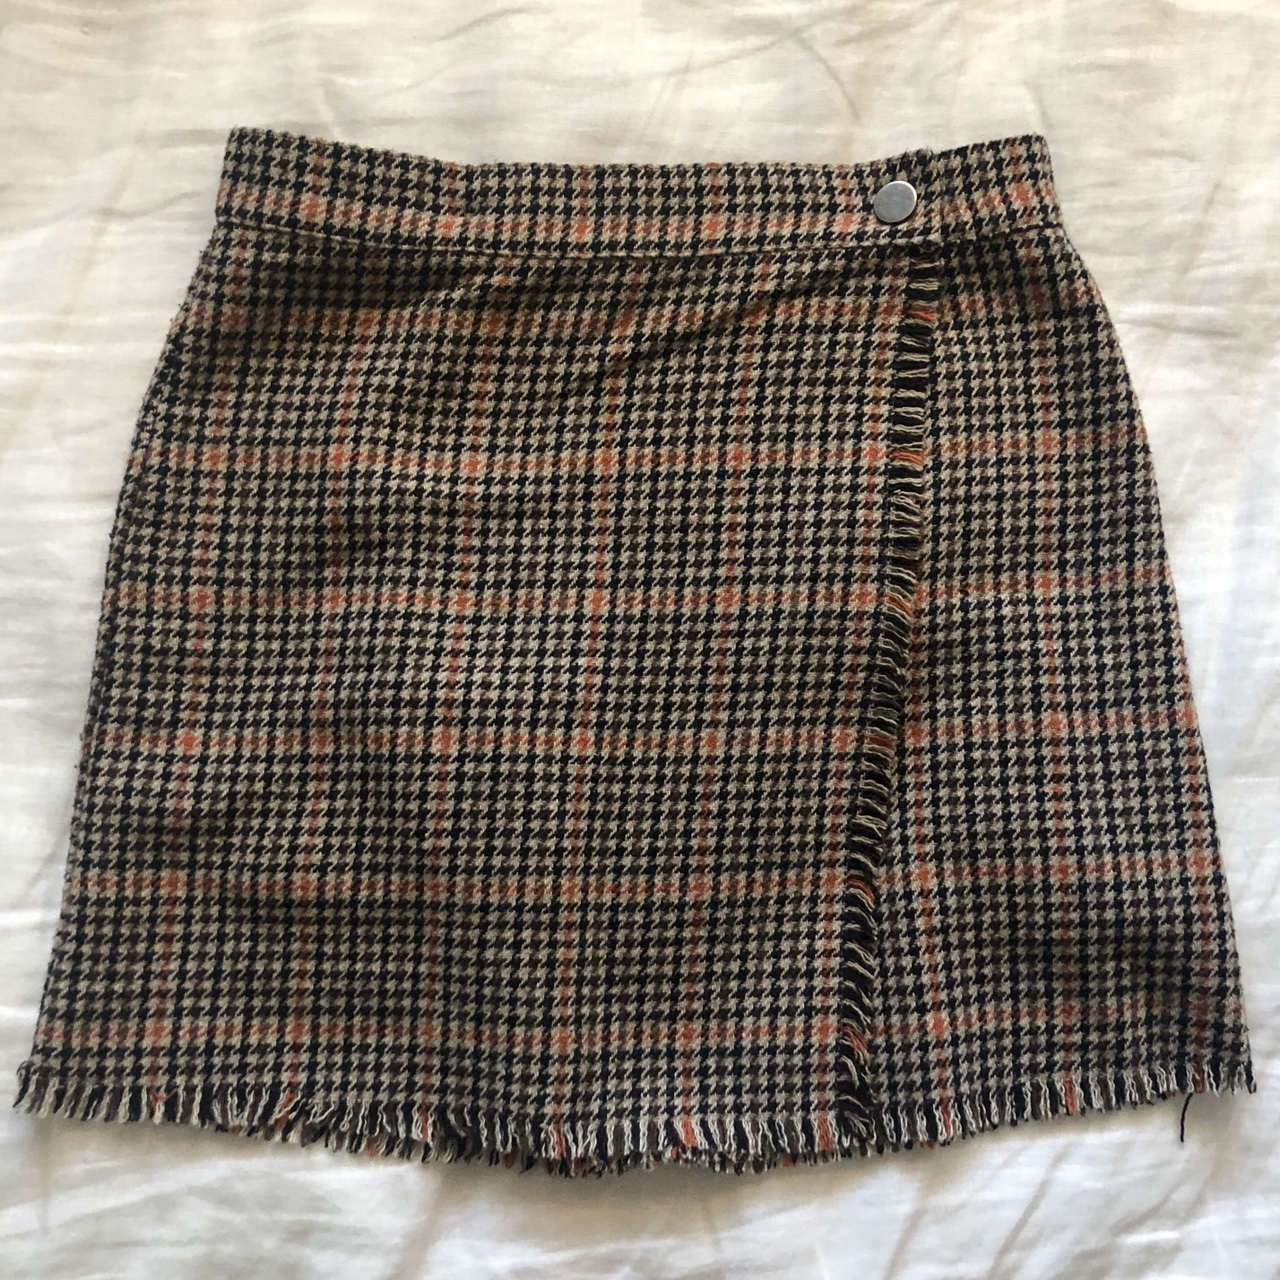 houndstooth wrap skirt from Urban Outfitters🧸🎀